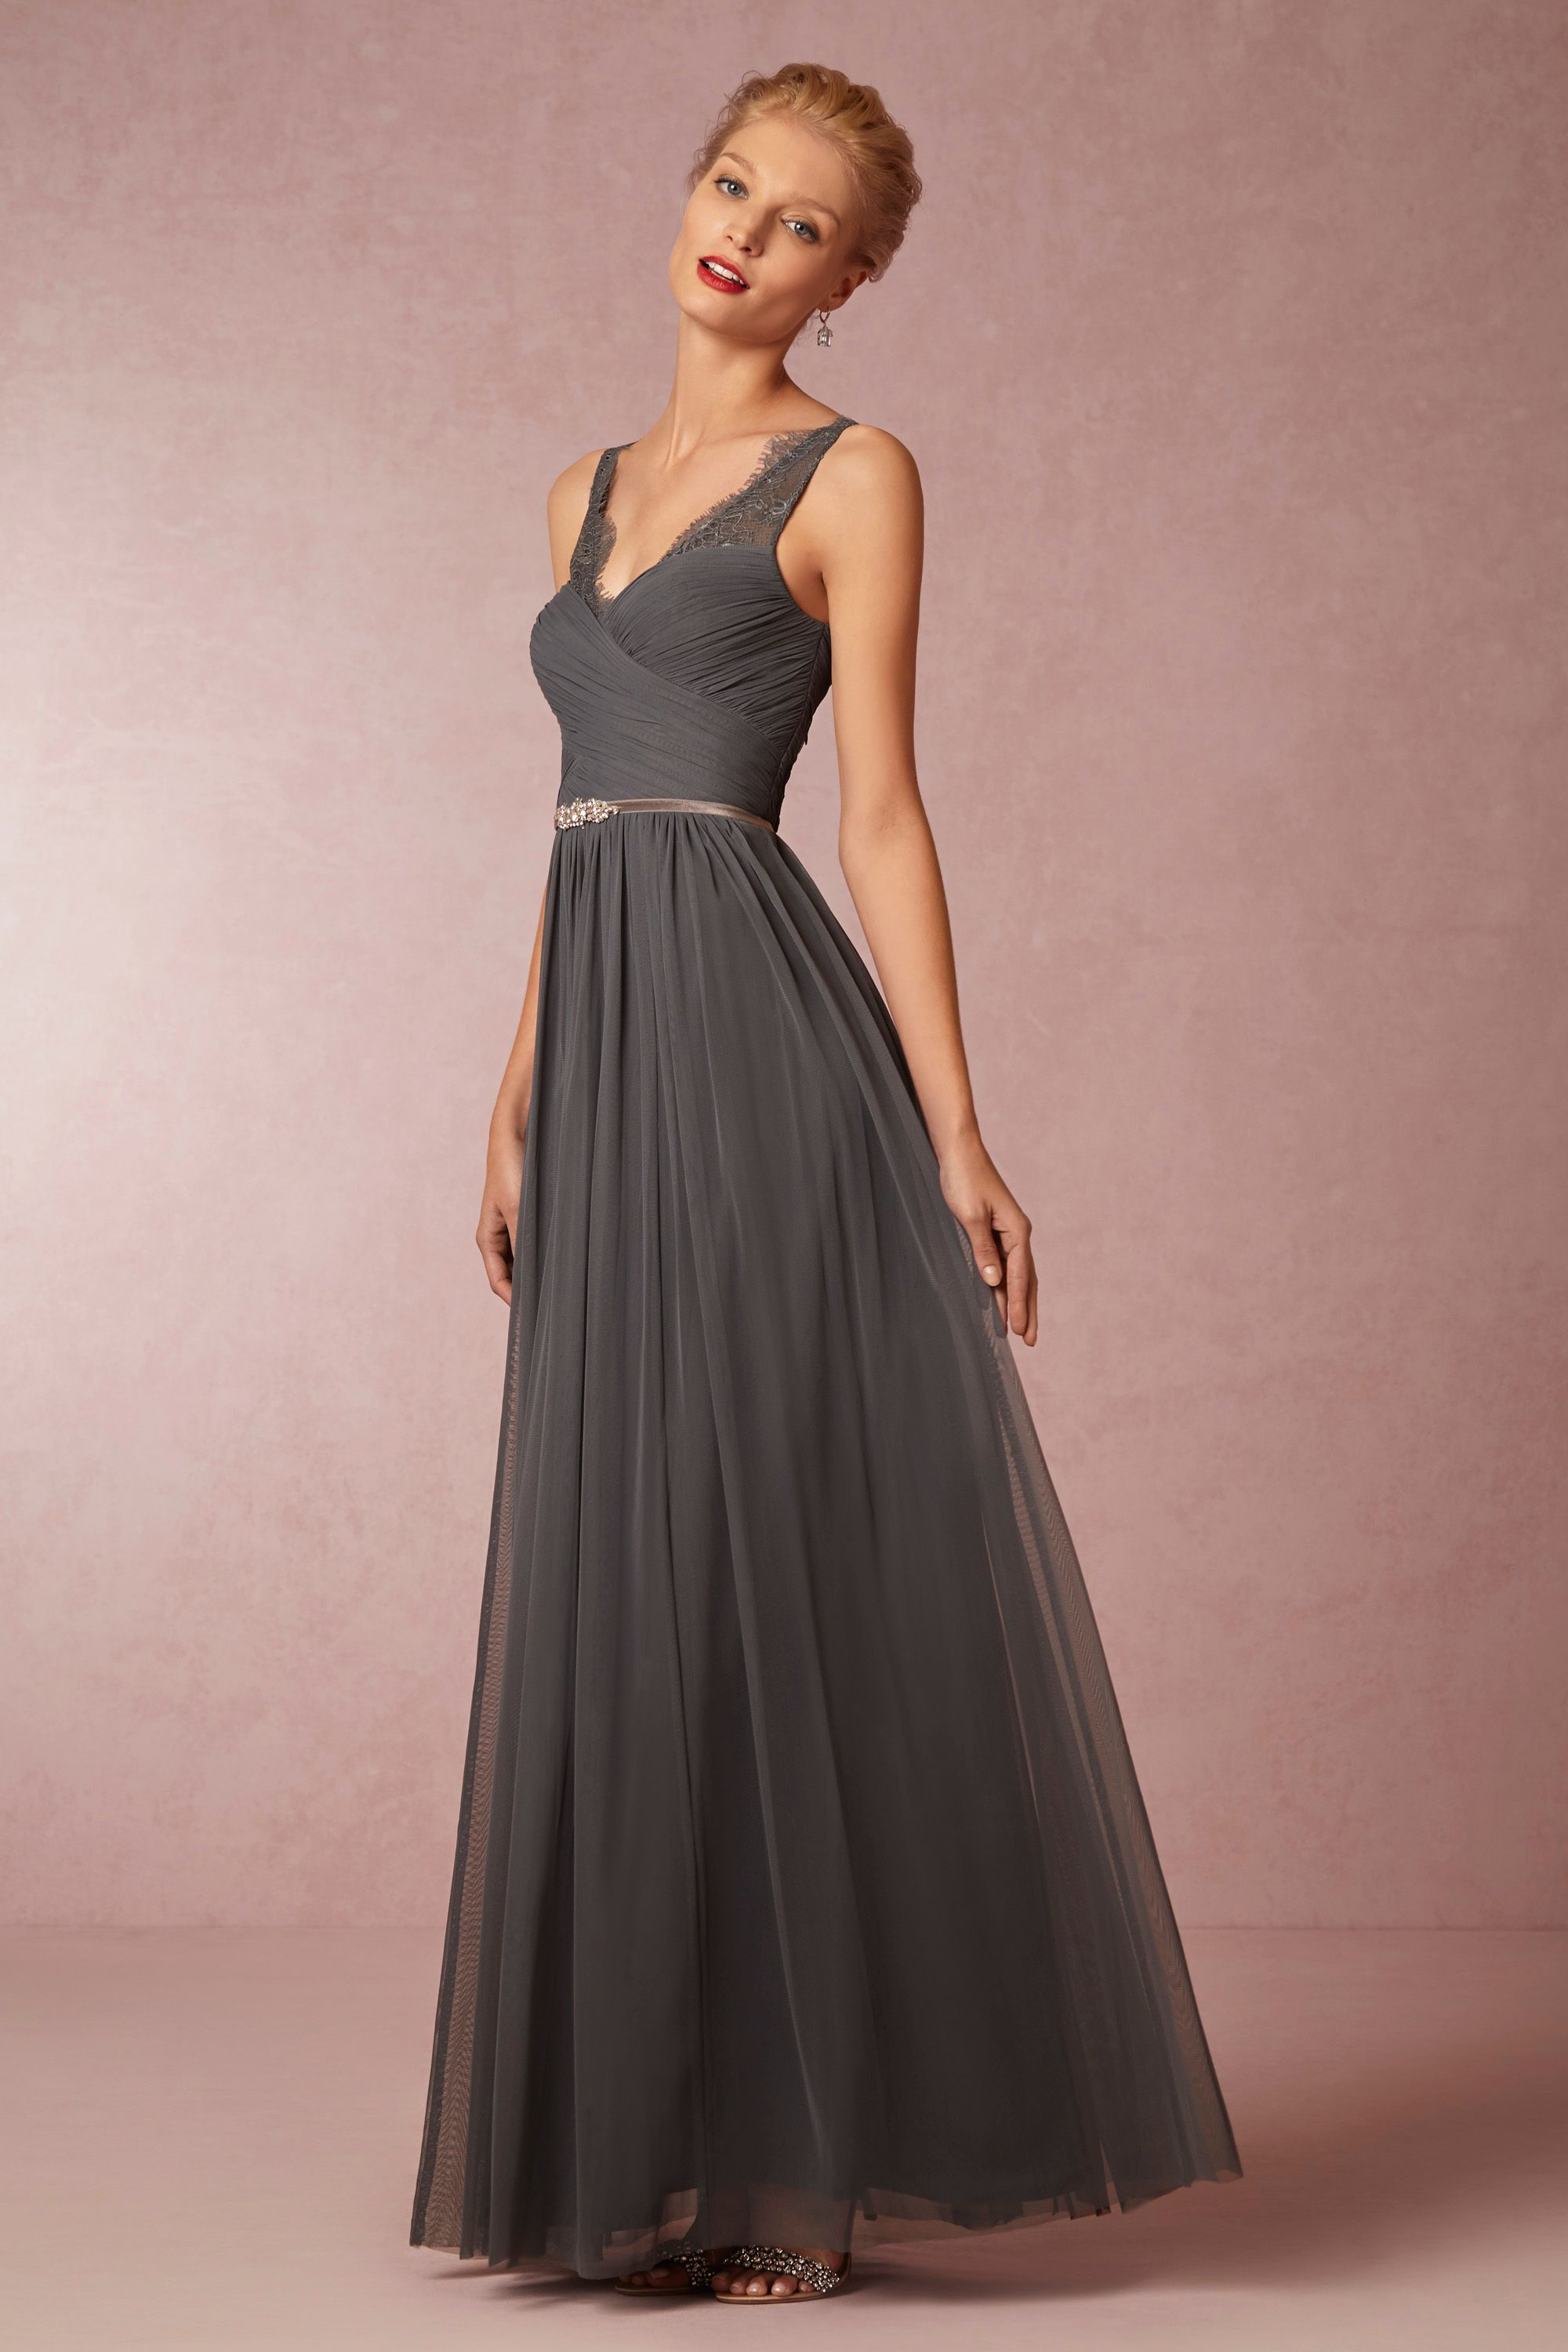 BHLDN\'s Hitherto Fleur Dress in Pewter | Vestidos de noche, Noche y ...